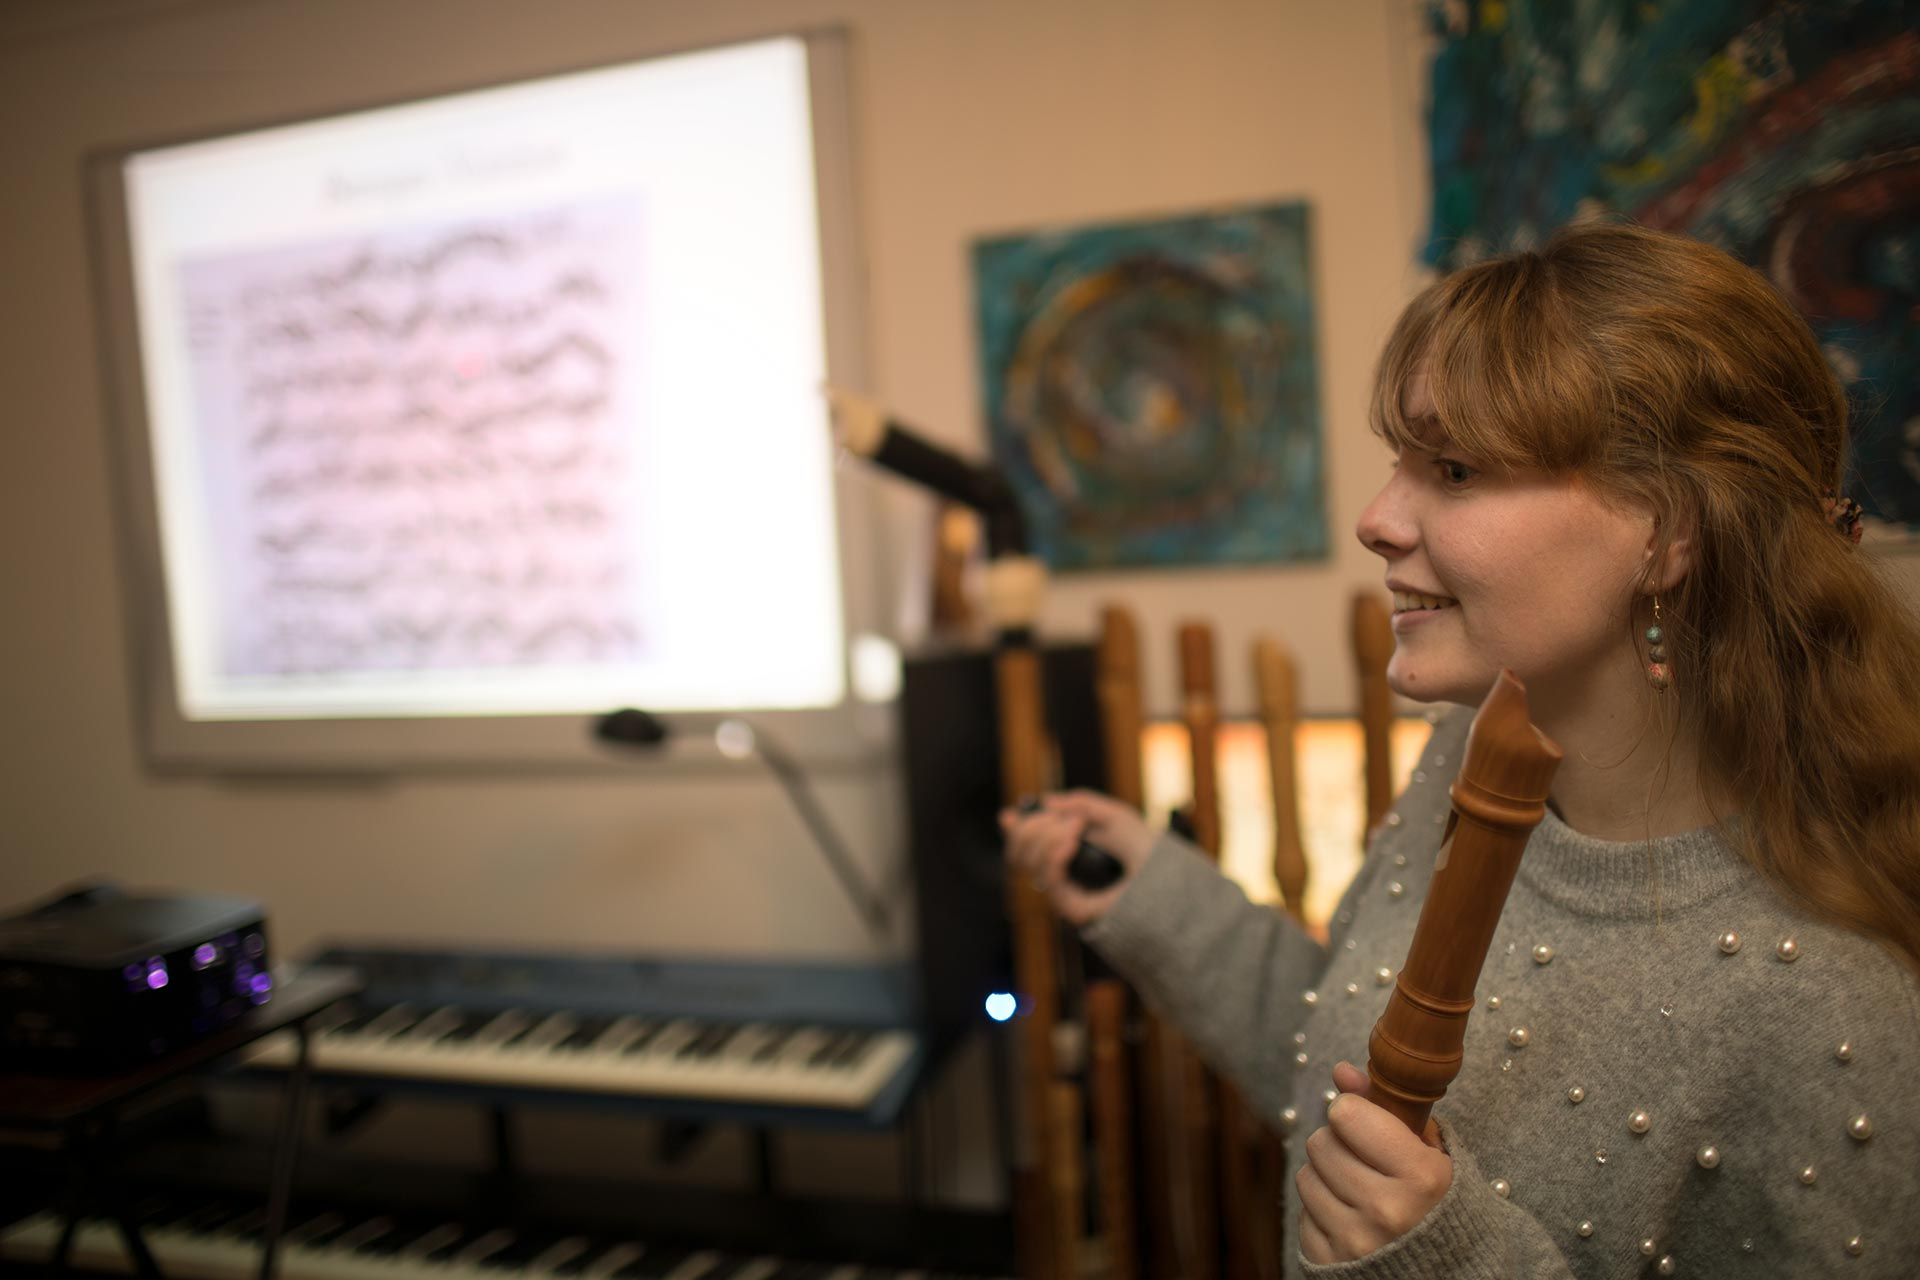 Stephanie Liney gives a Ted-Style Talk on Why You Should Love The Recorder